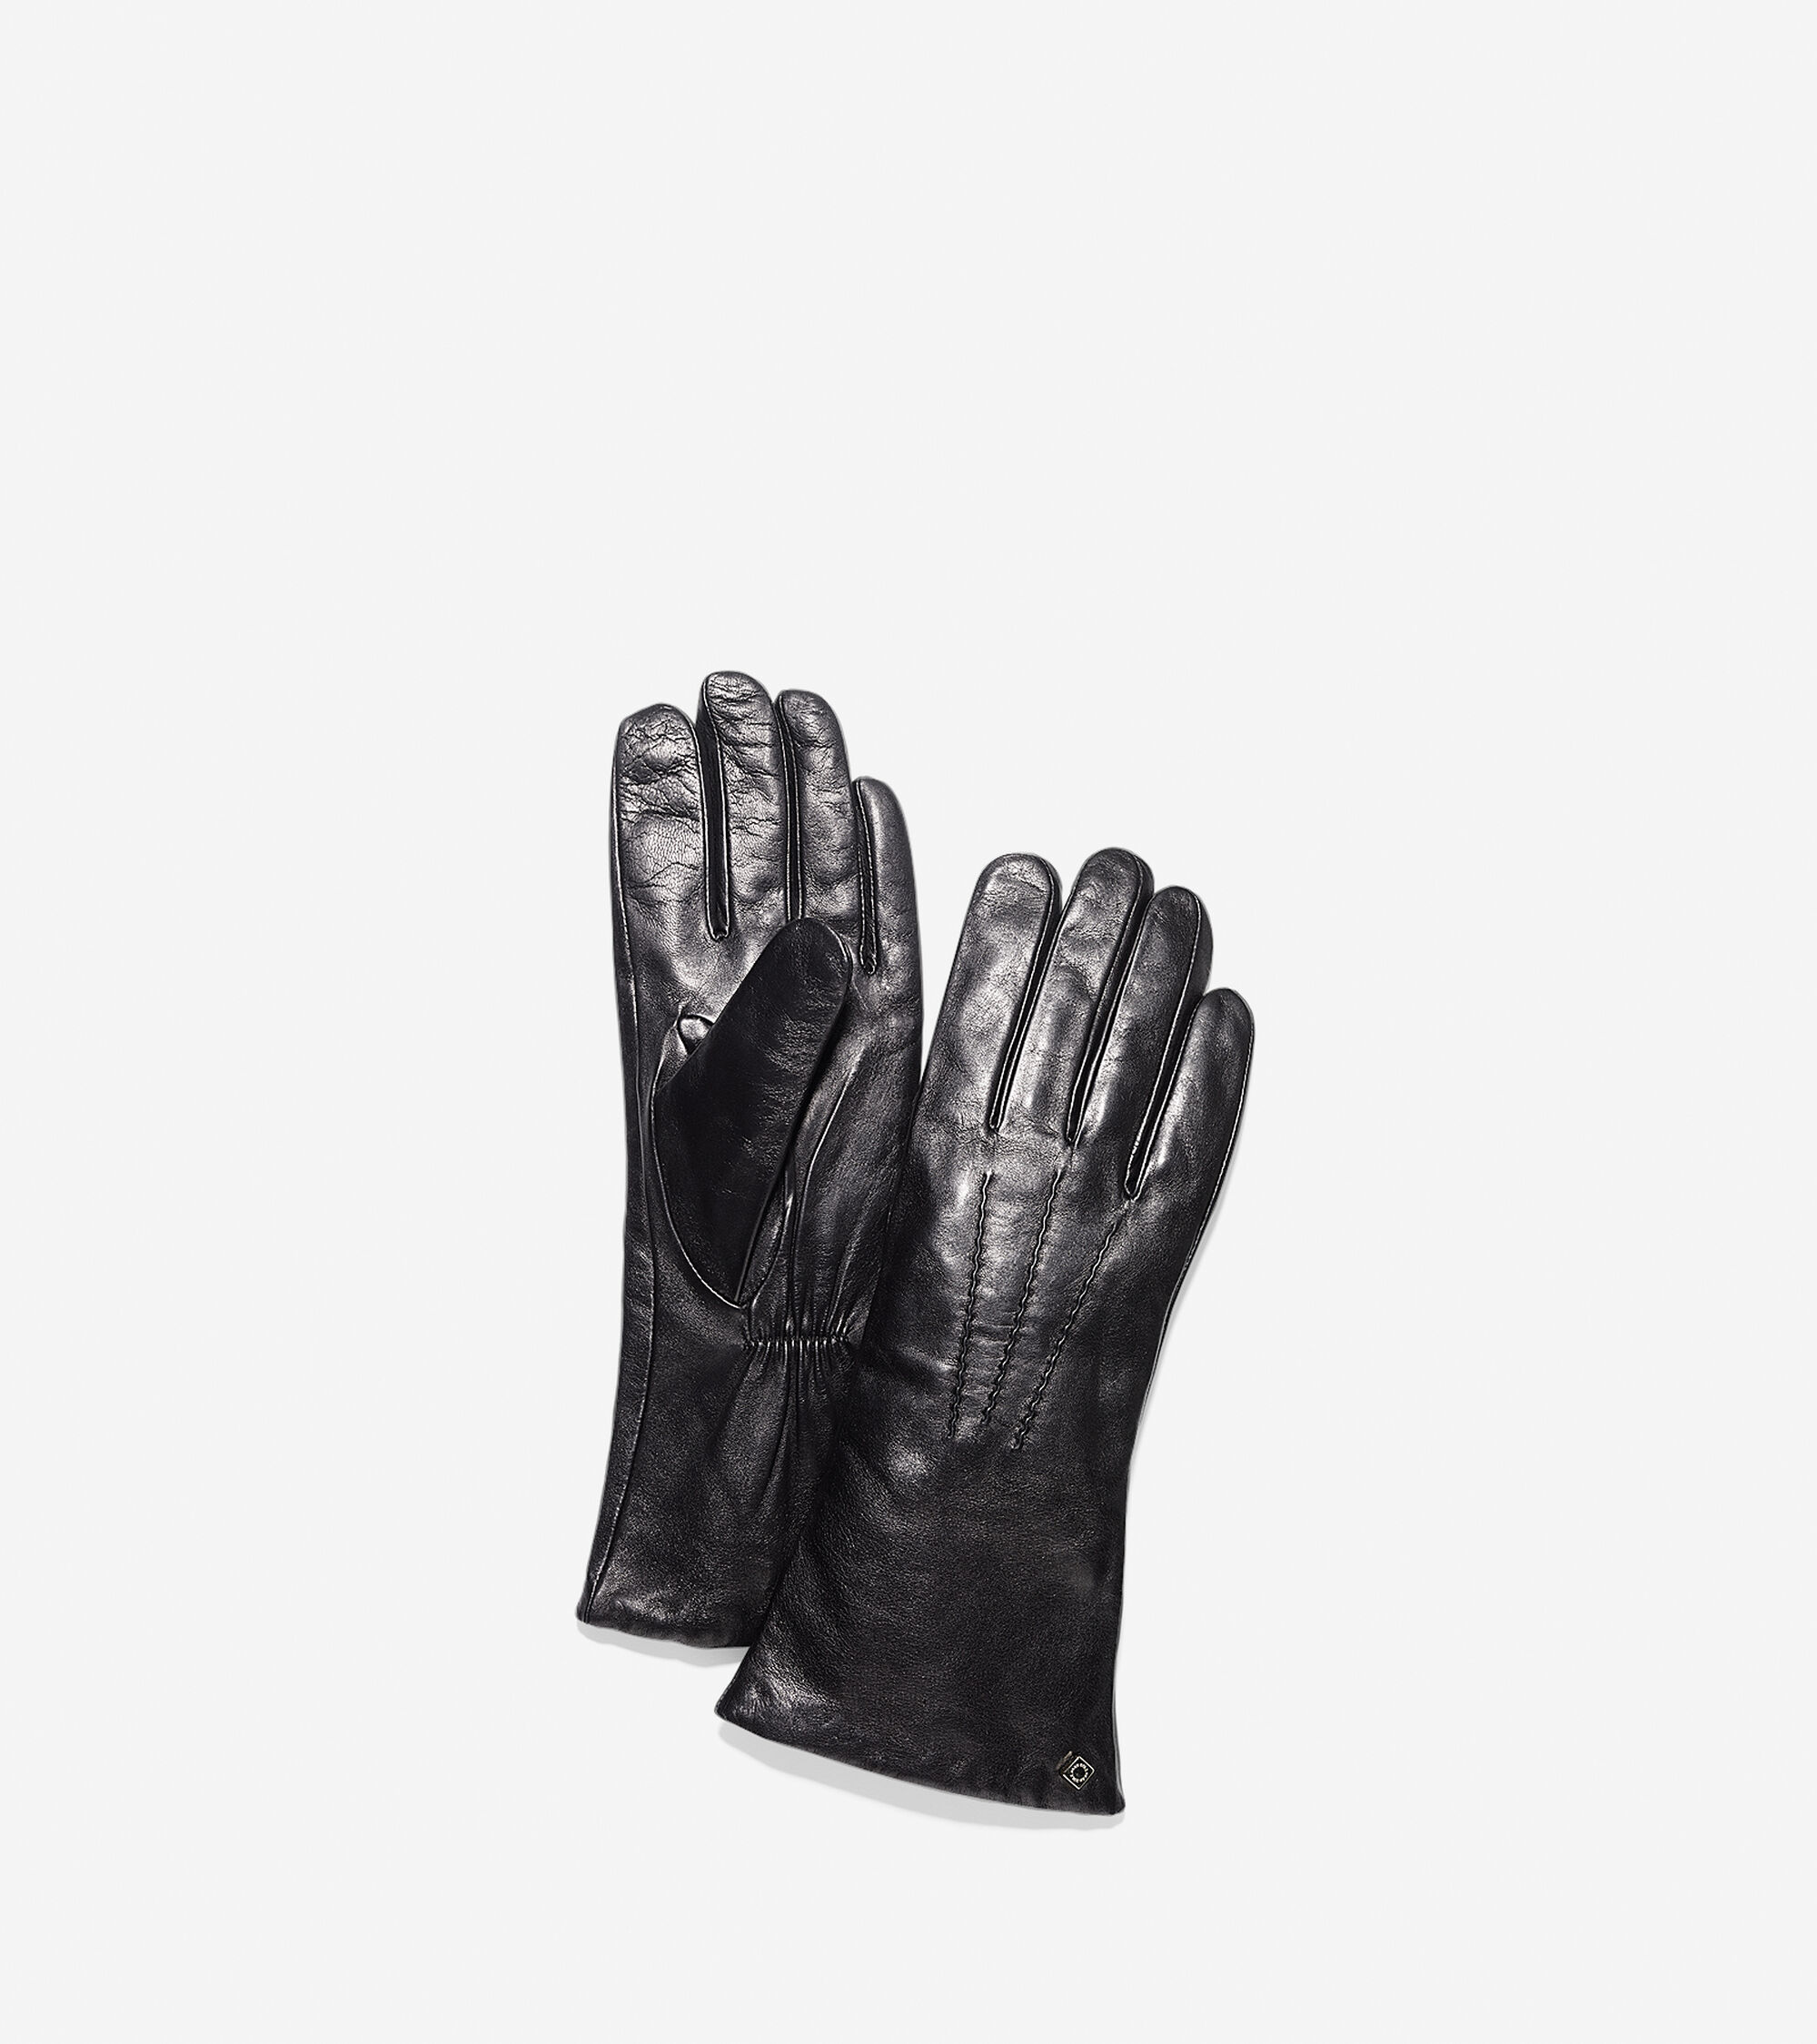 Cole haan black leather gloves - Long Lambskin Leather Gloves Long Lambskin Leather Gloves Colehaan